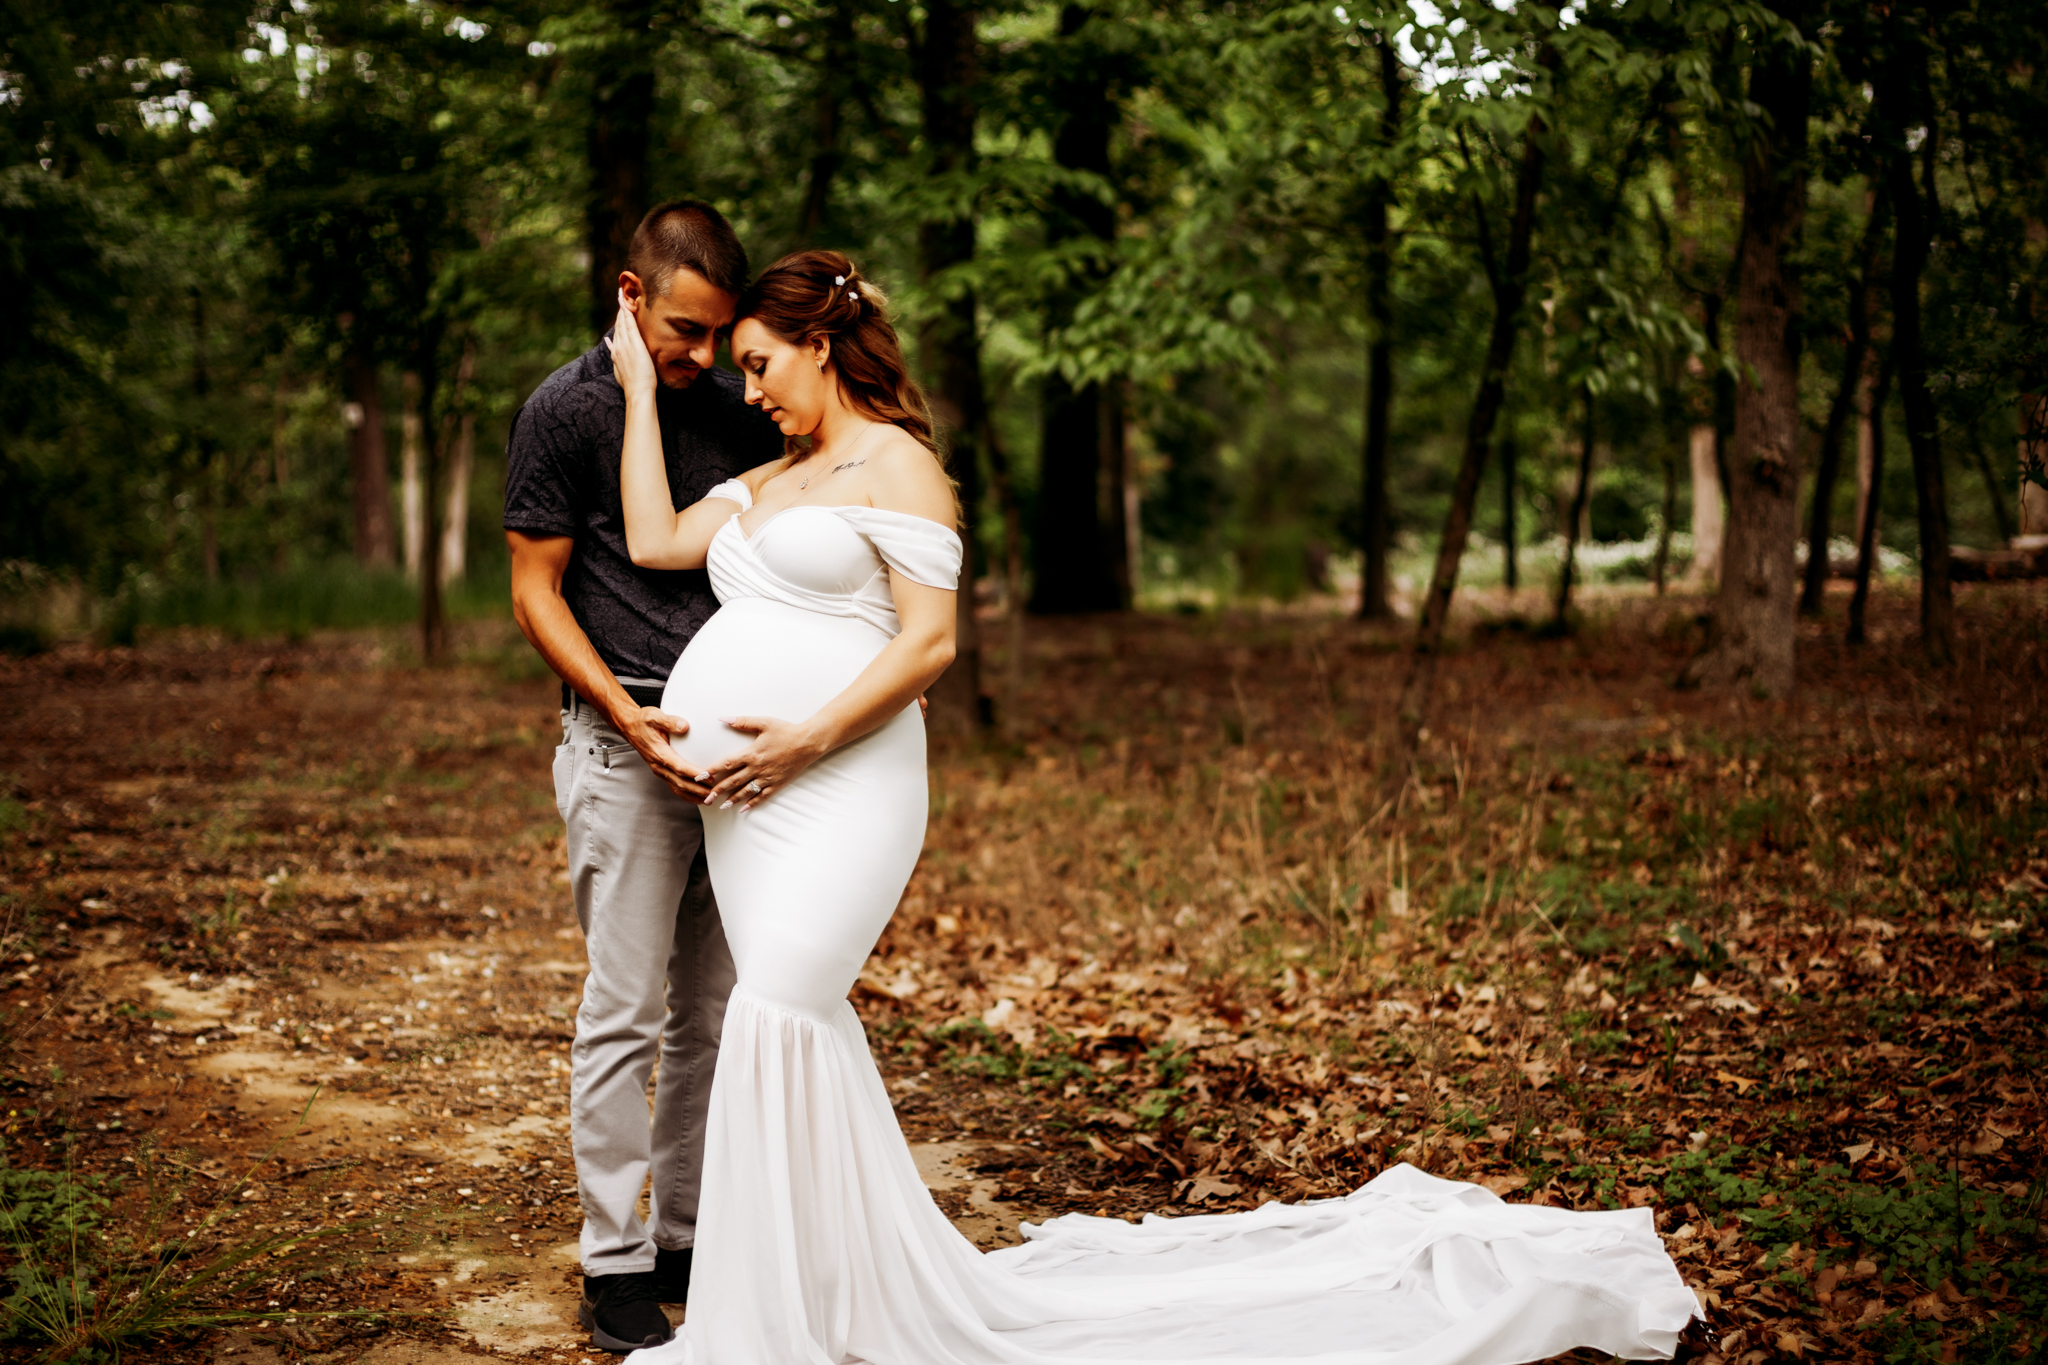 pregnant woman in white gown holding husbands face looking down at baby bump